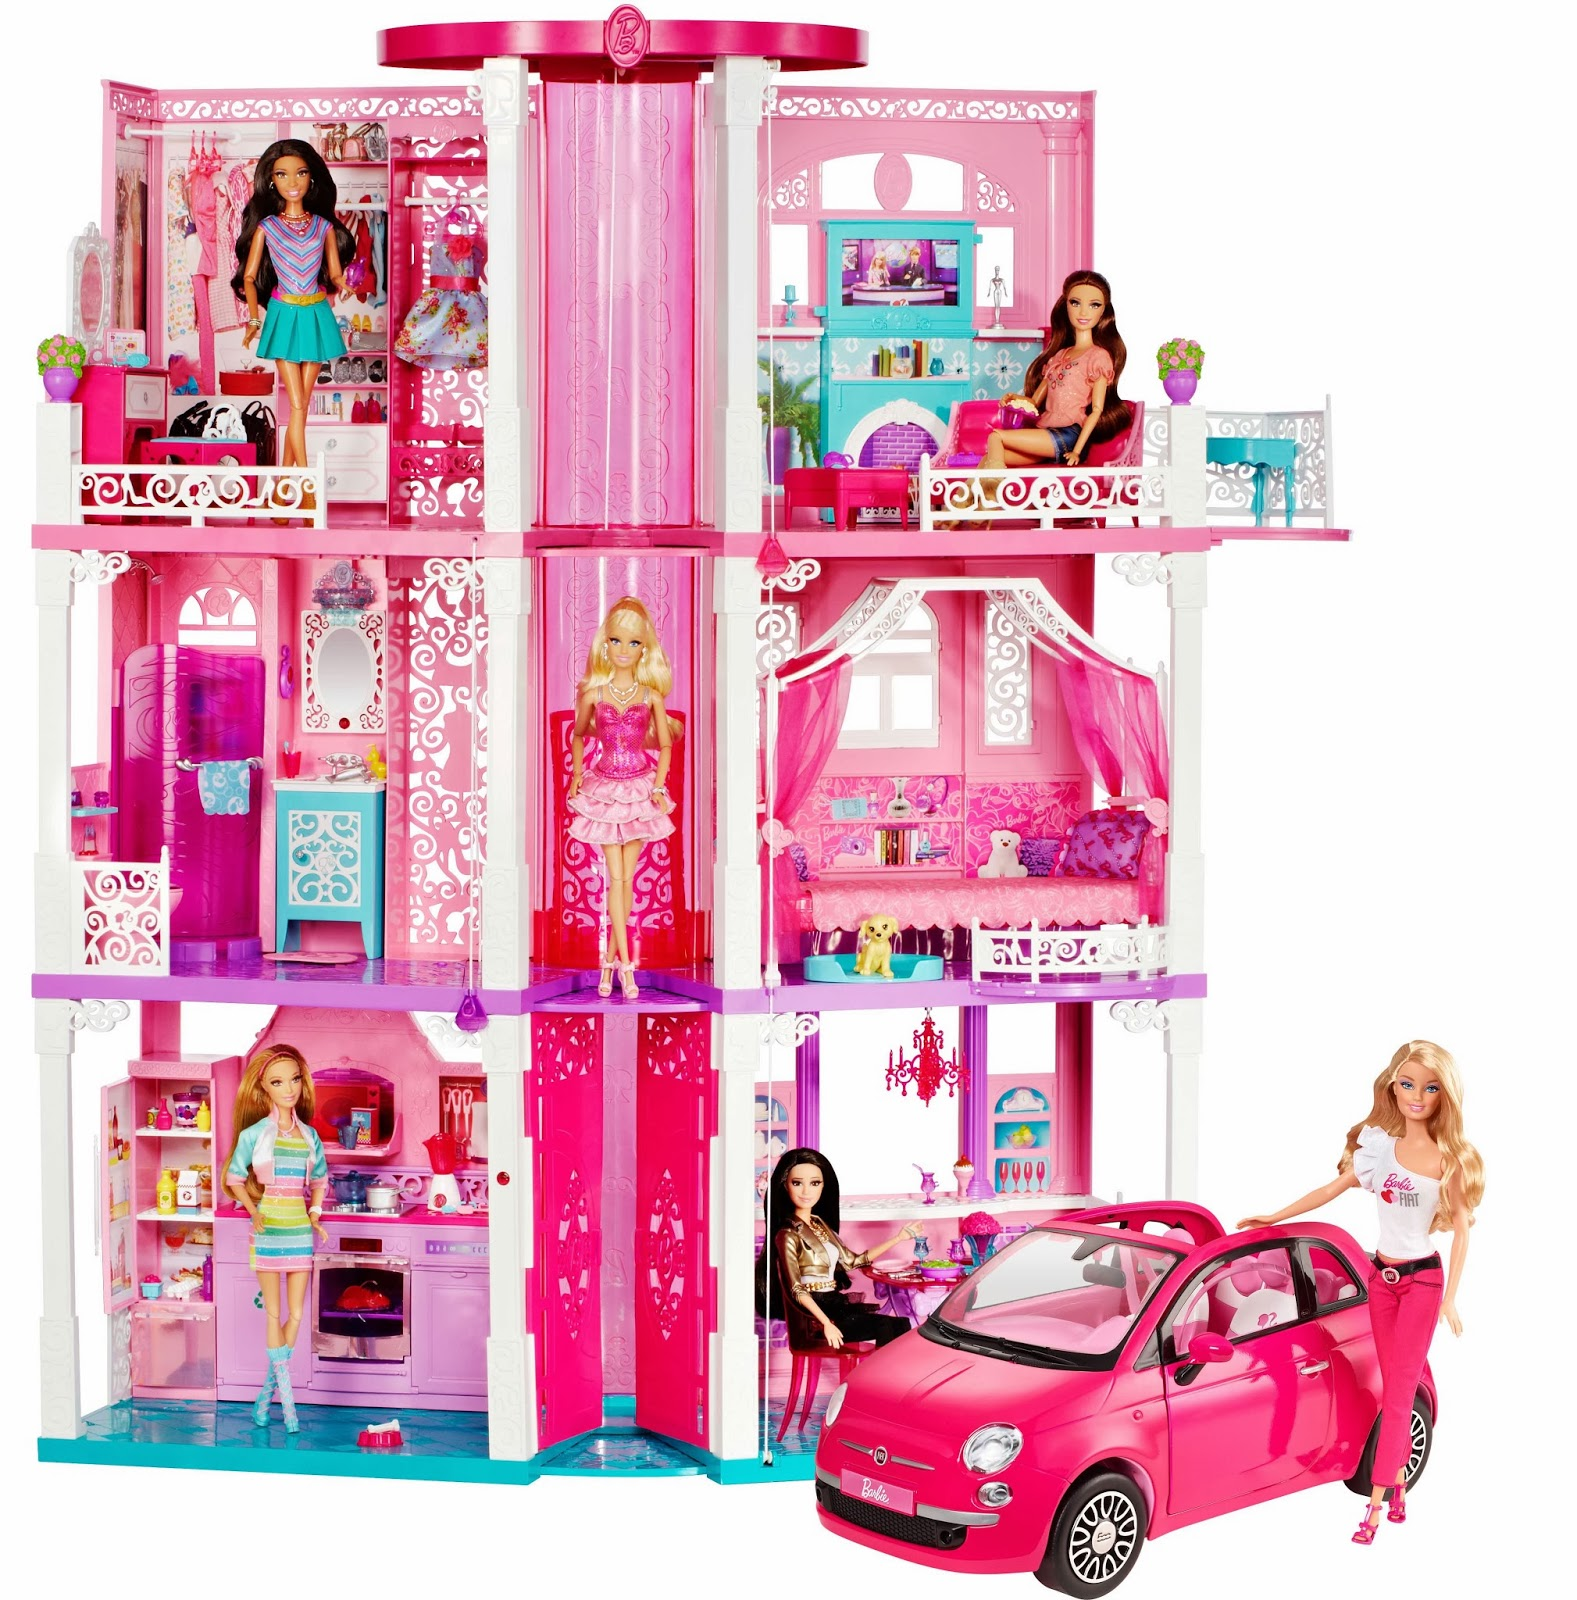 idee regalo vederli e 39 volerli la nuova casa dei sogni di barbie del 2013 il regalo giusto. Black Bedroom Furniture Sets. Home Design Ideas